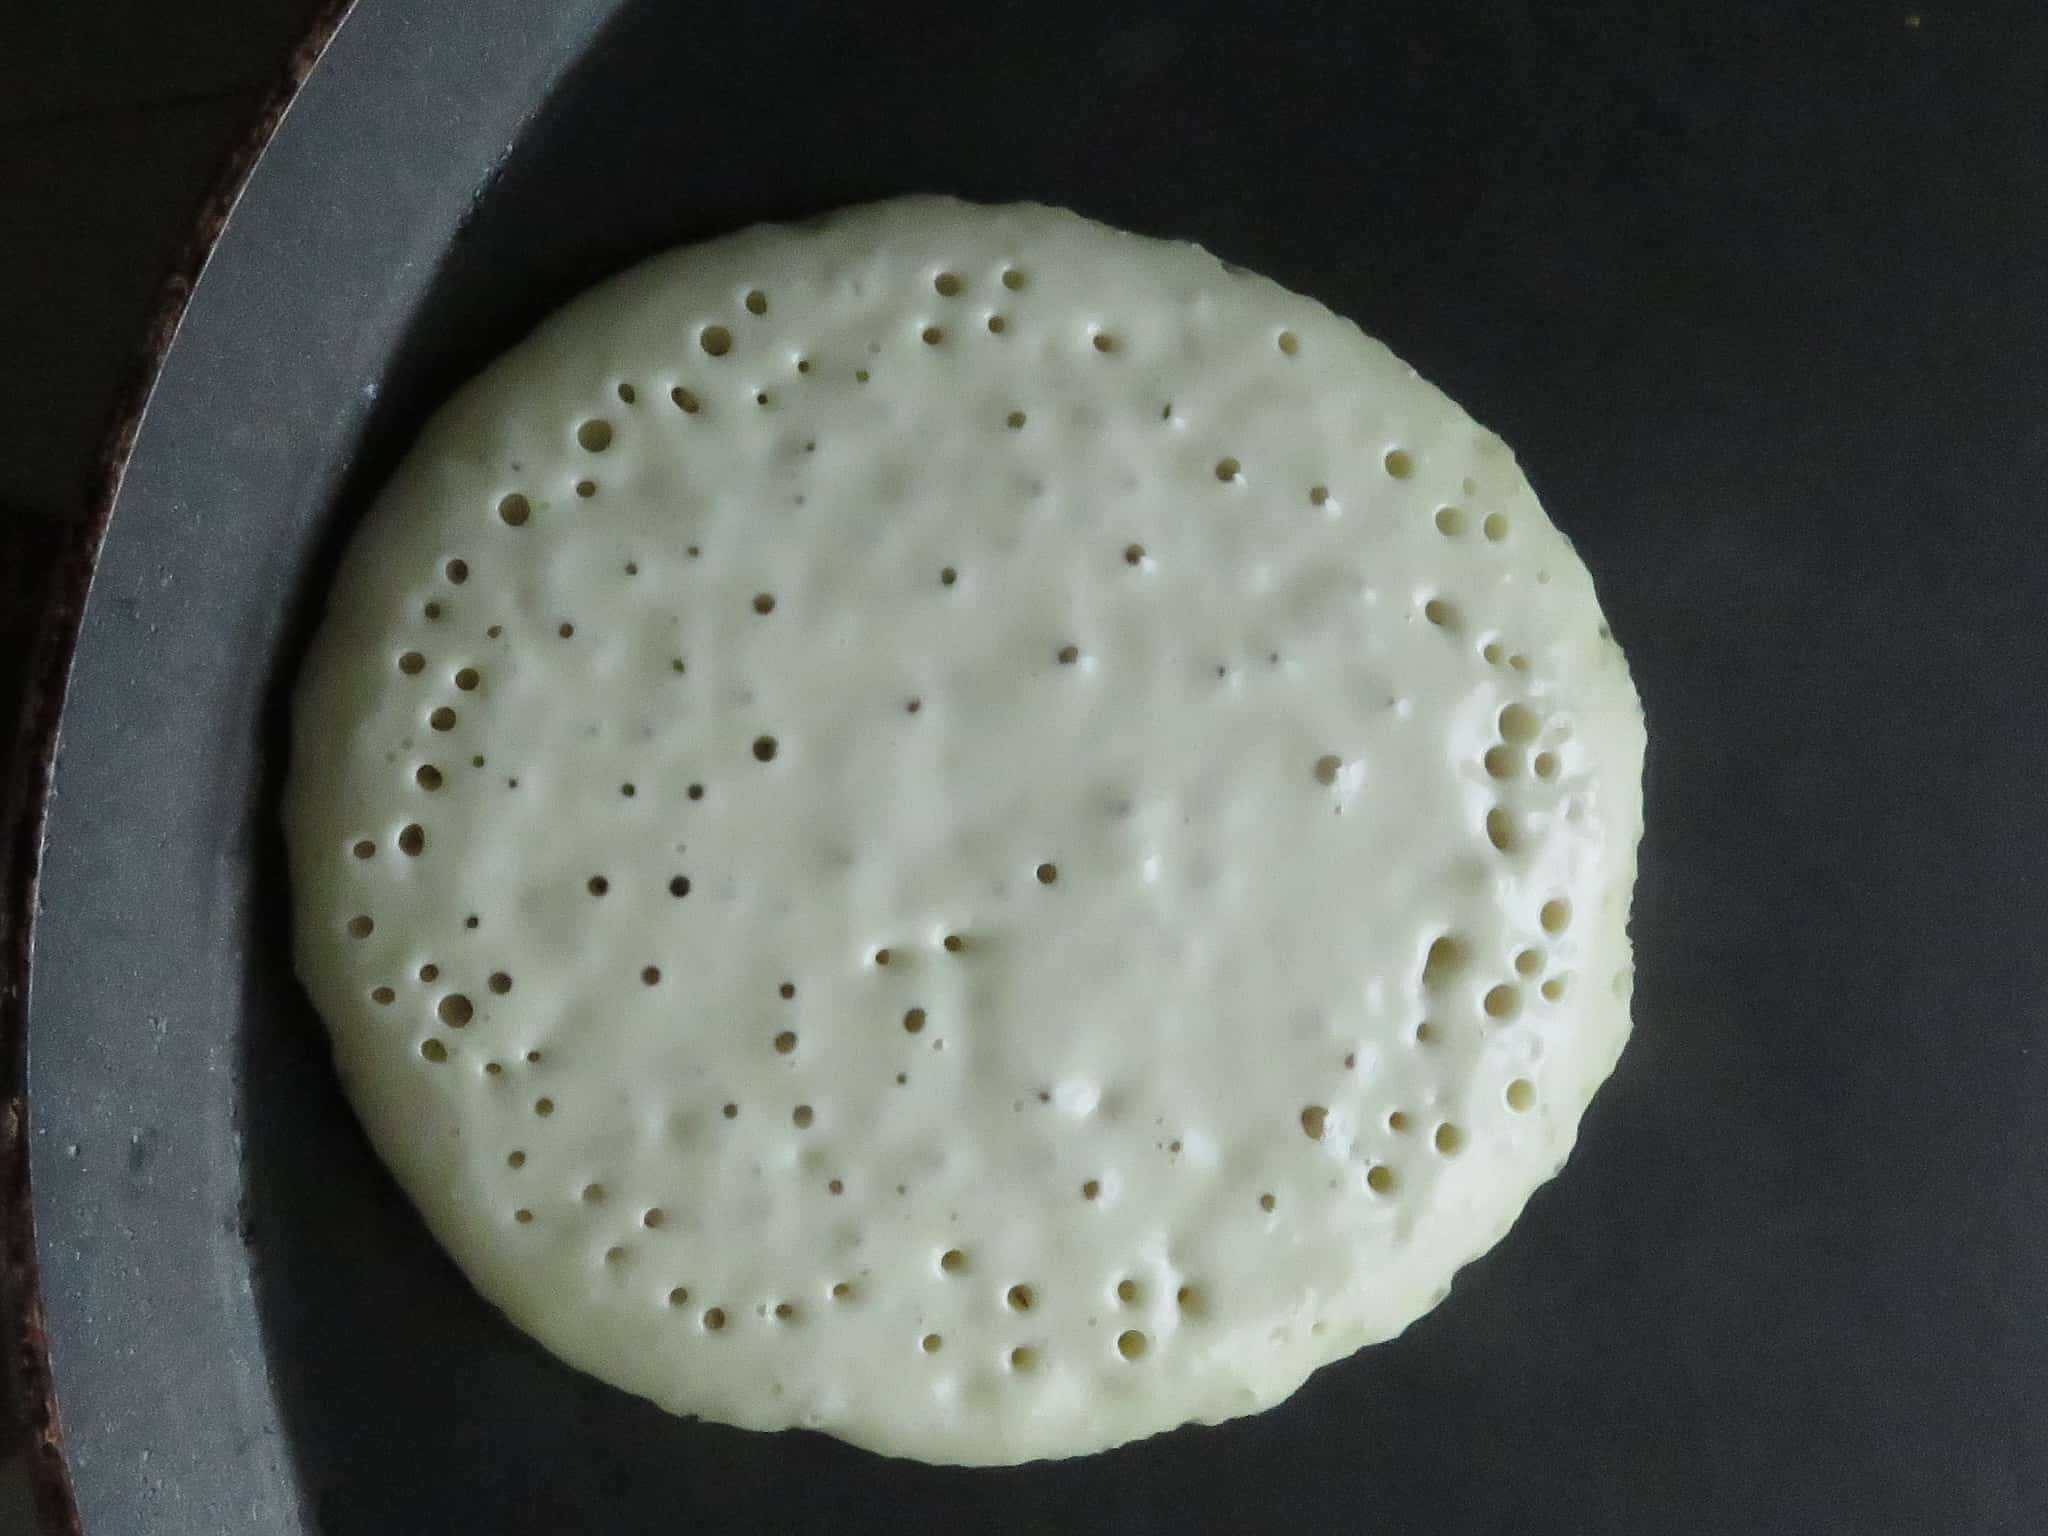 image shows tiny holes appearing on the pancakes as it cooks.